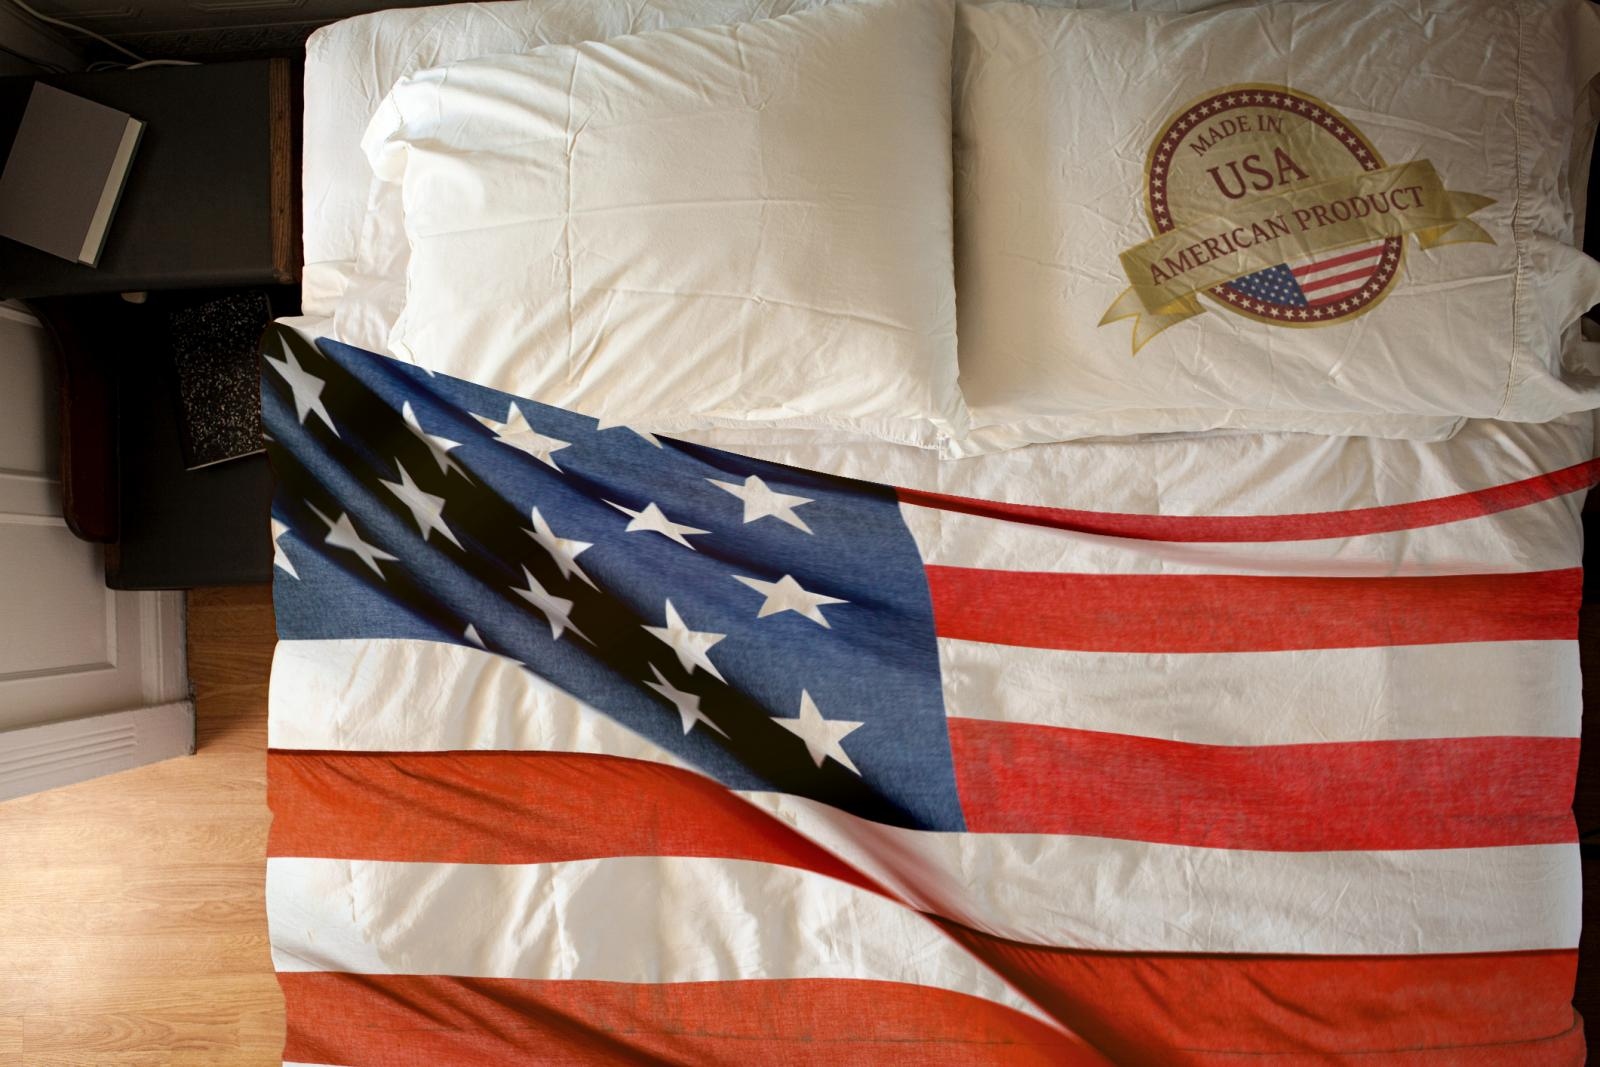 USA Bed